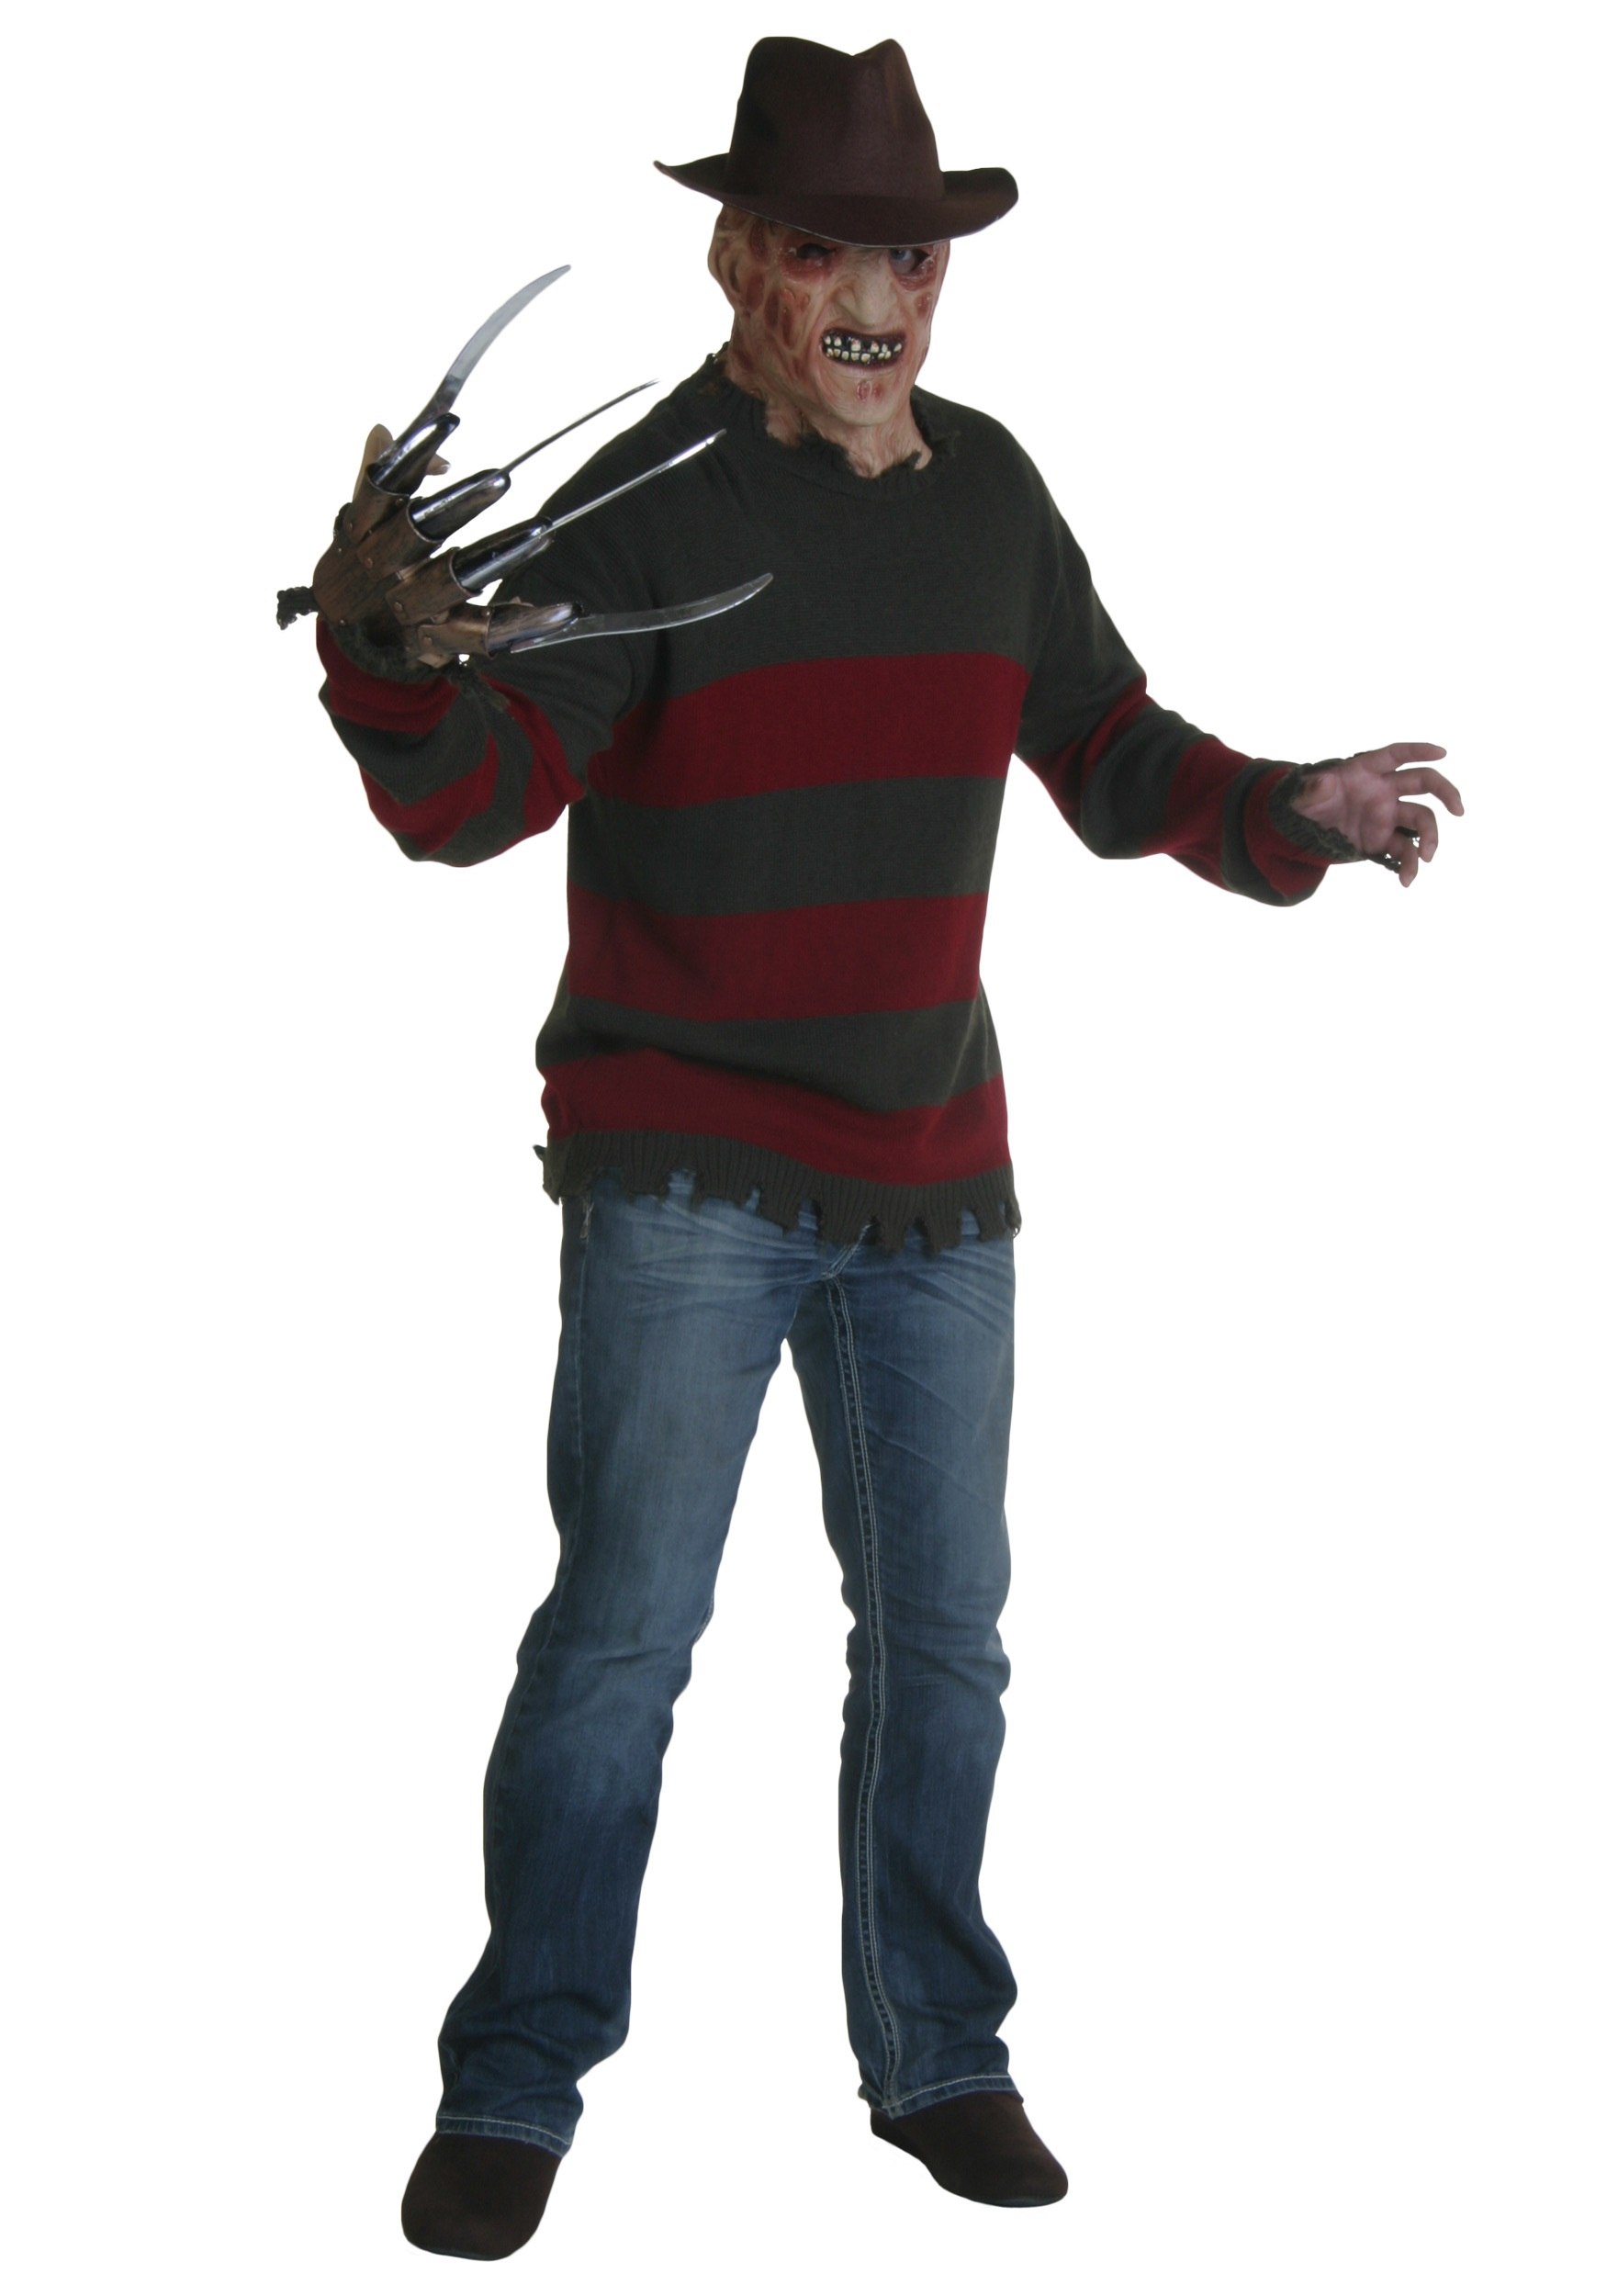 Freddy Krueger Costume - A Nightmare on Elm Street